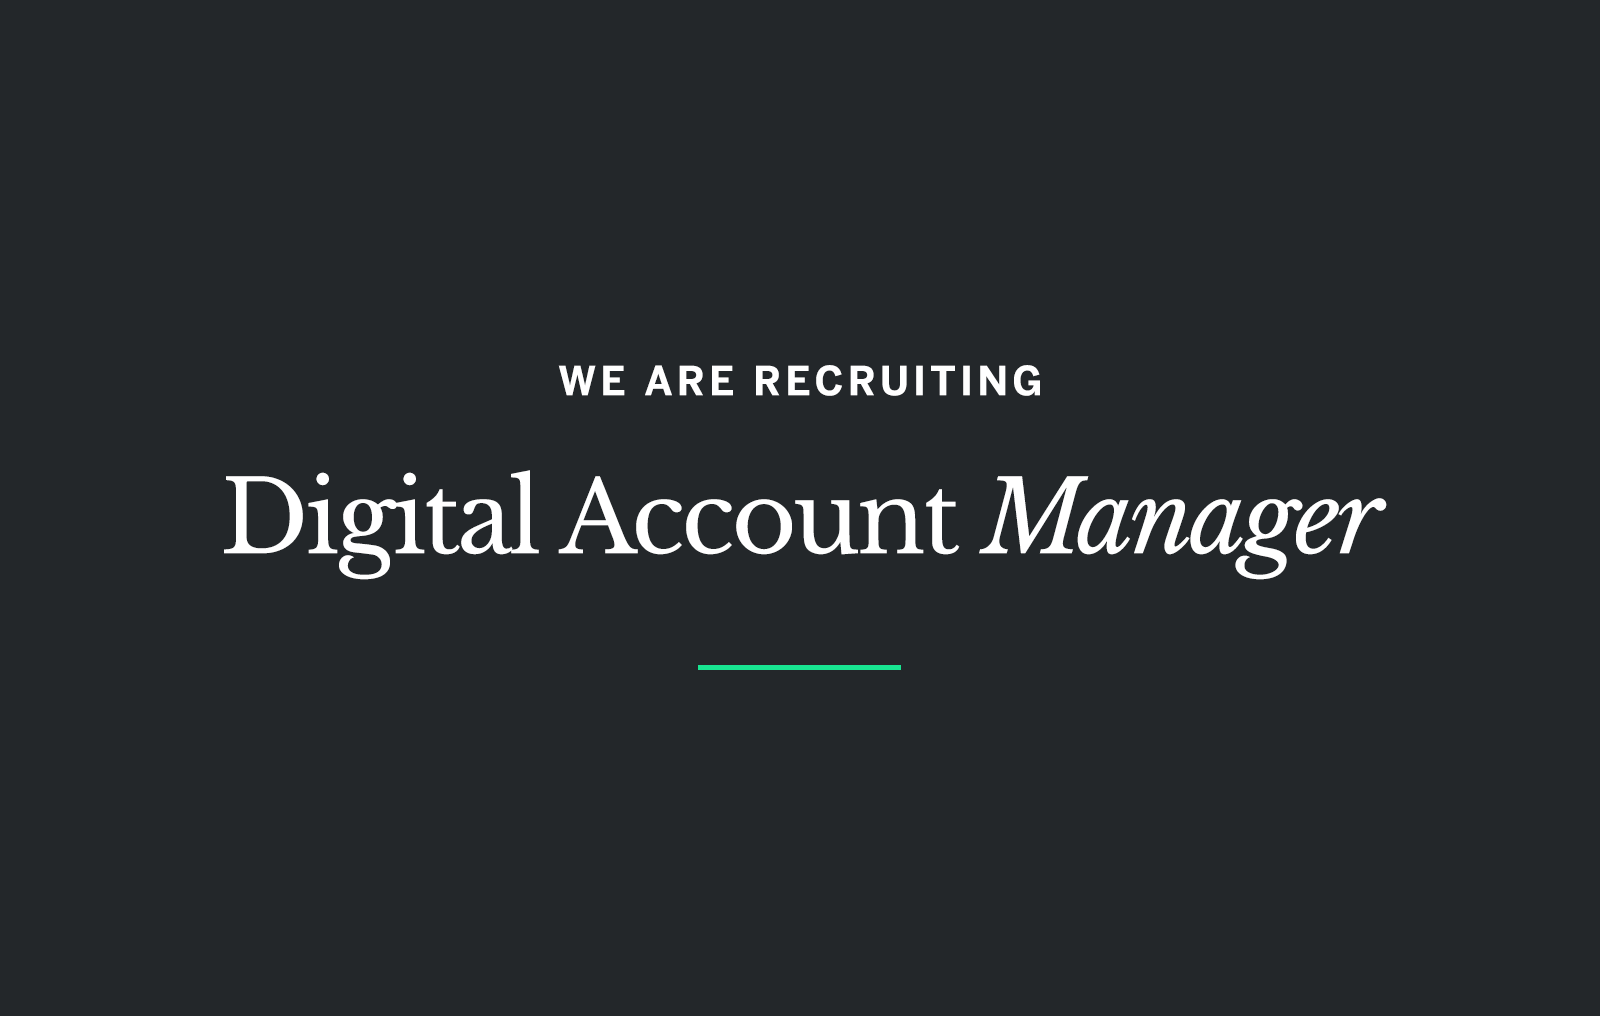 digital account manager careers